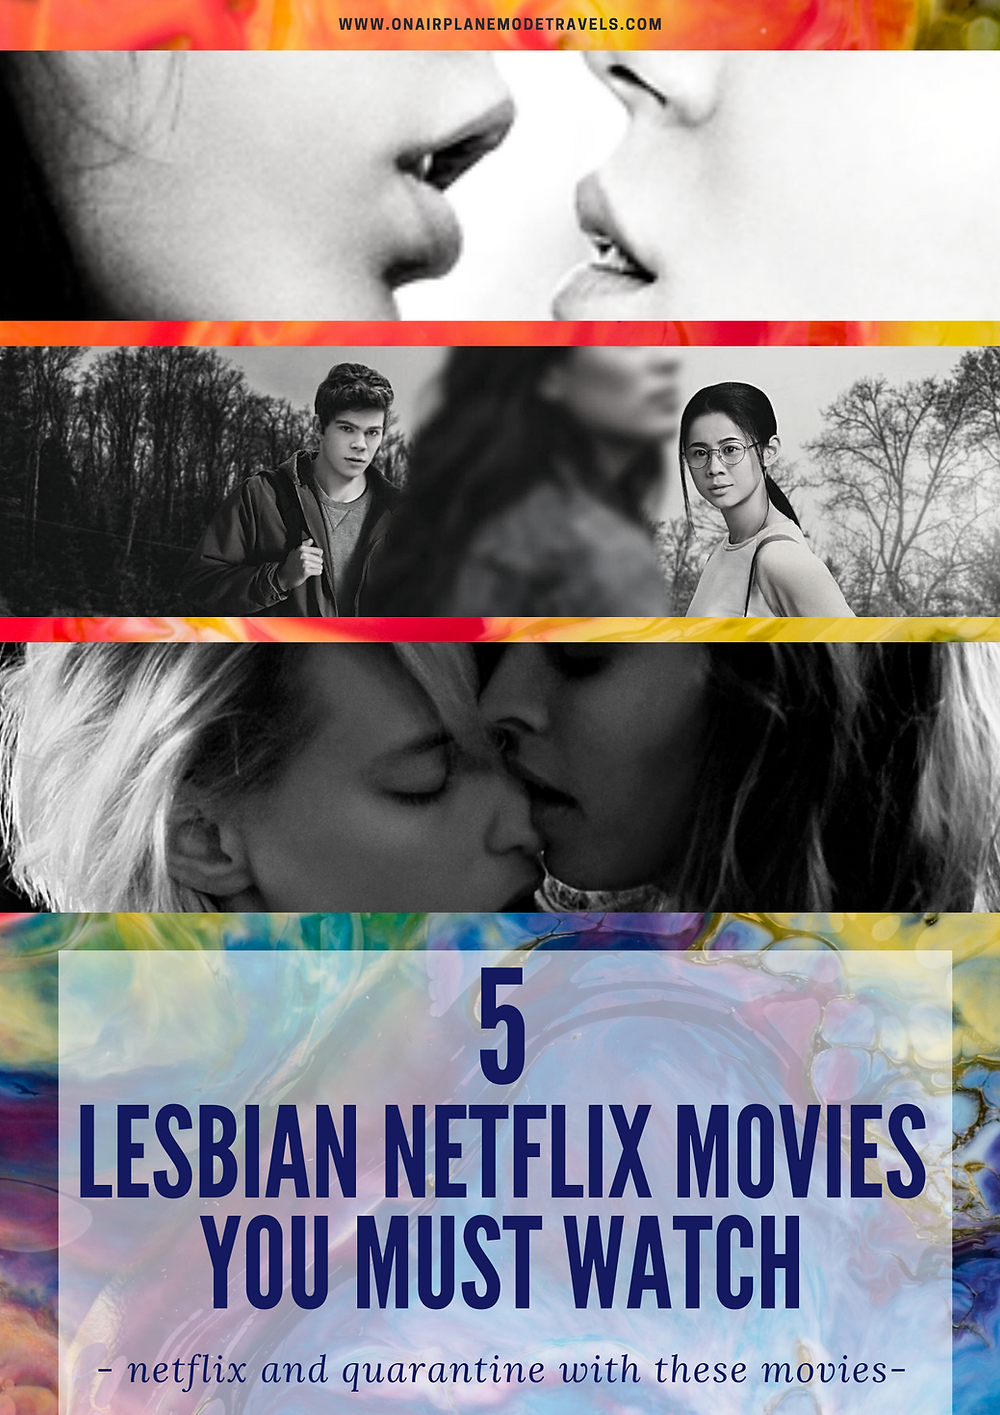 Top 5 Netflix Lesbian Movies to Watch